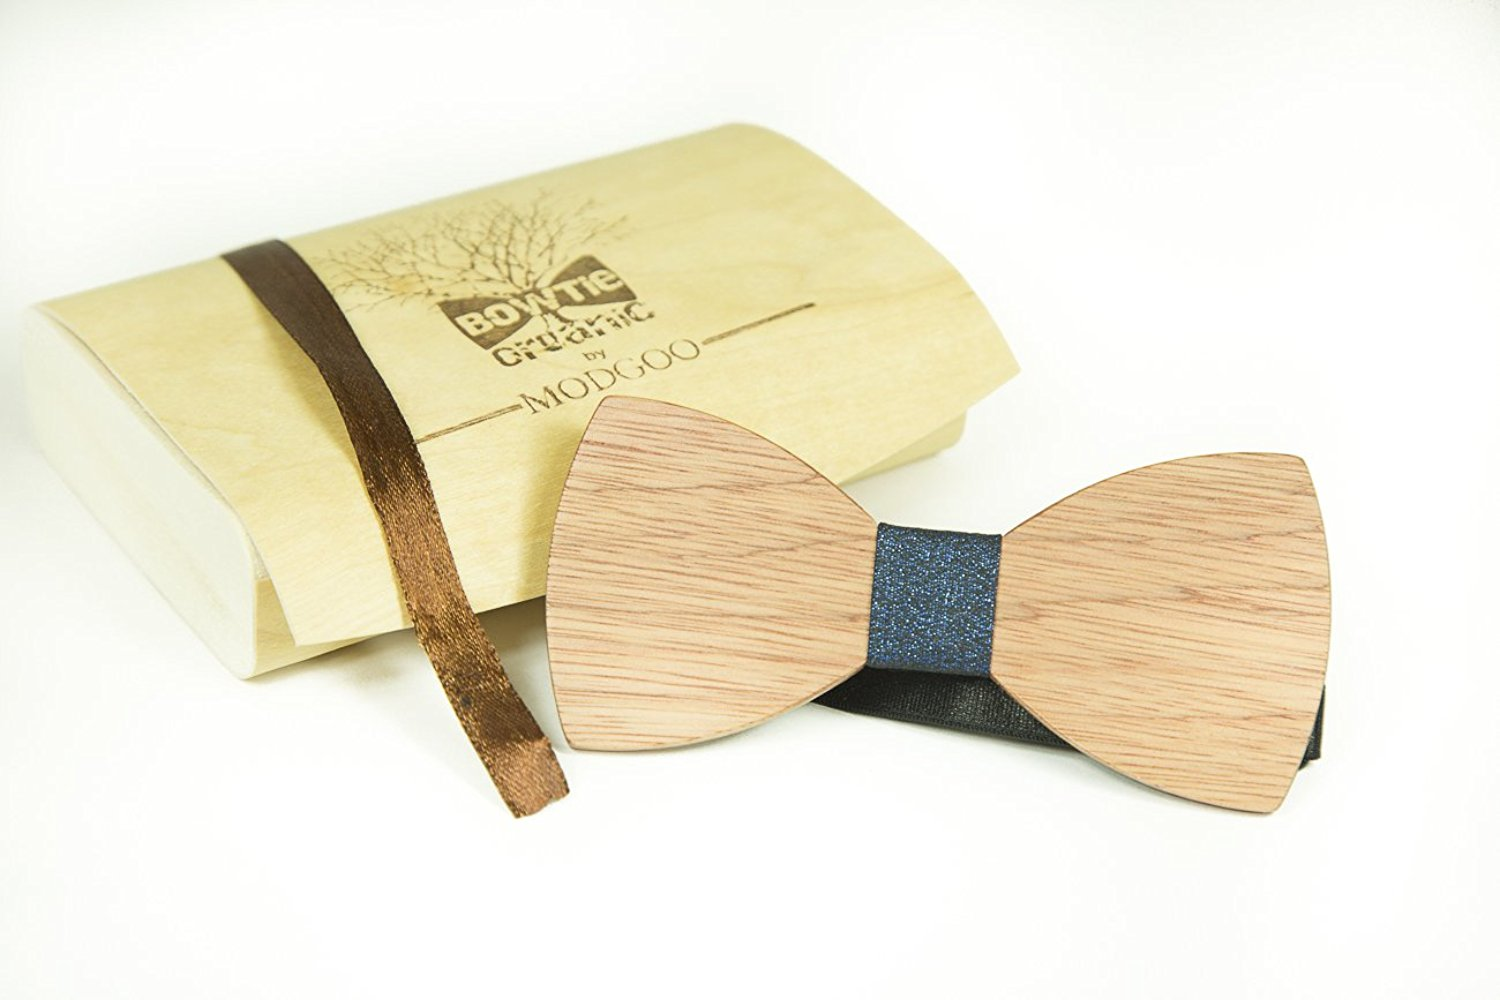 Modgoo Organic Wood Bow Tie Ryan Burberry pattern Stellar Blue